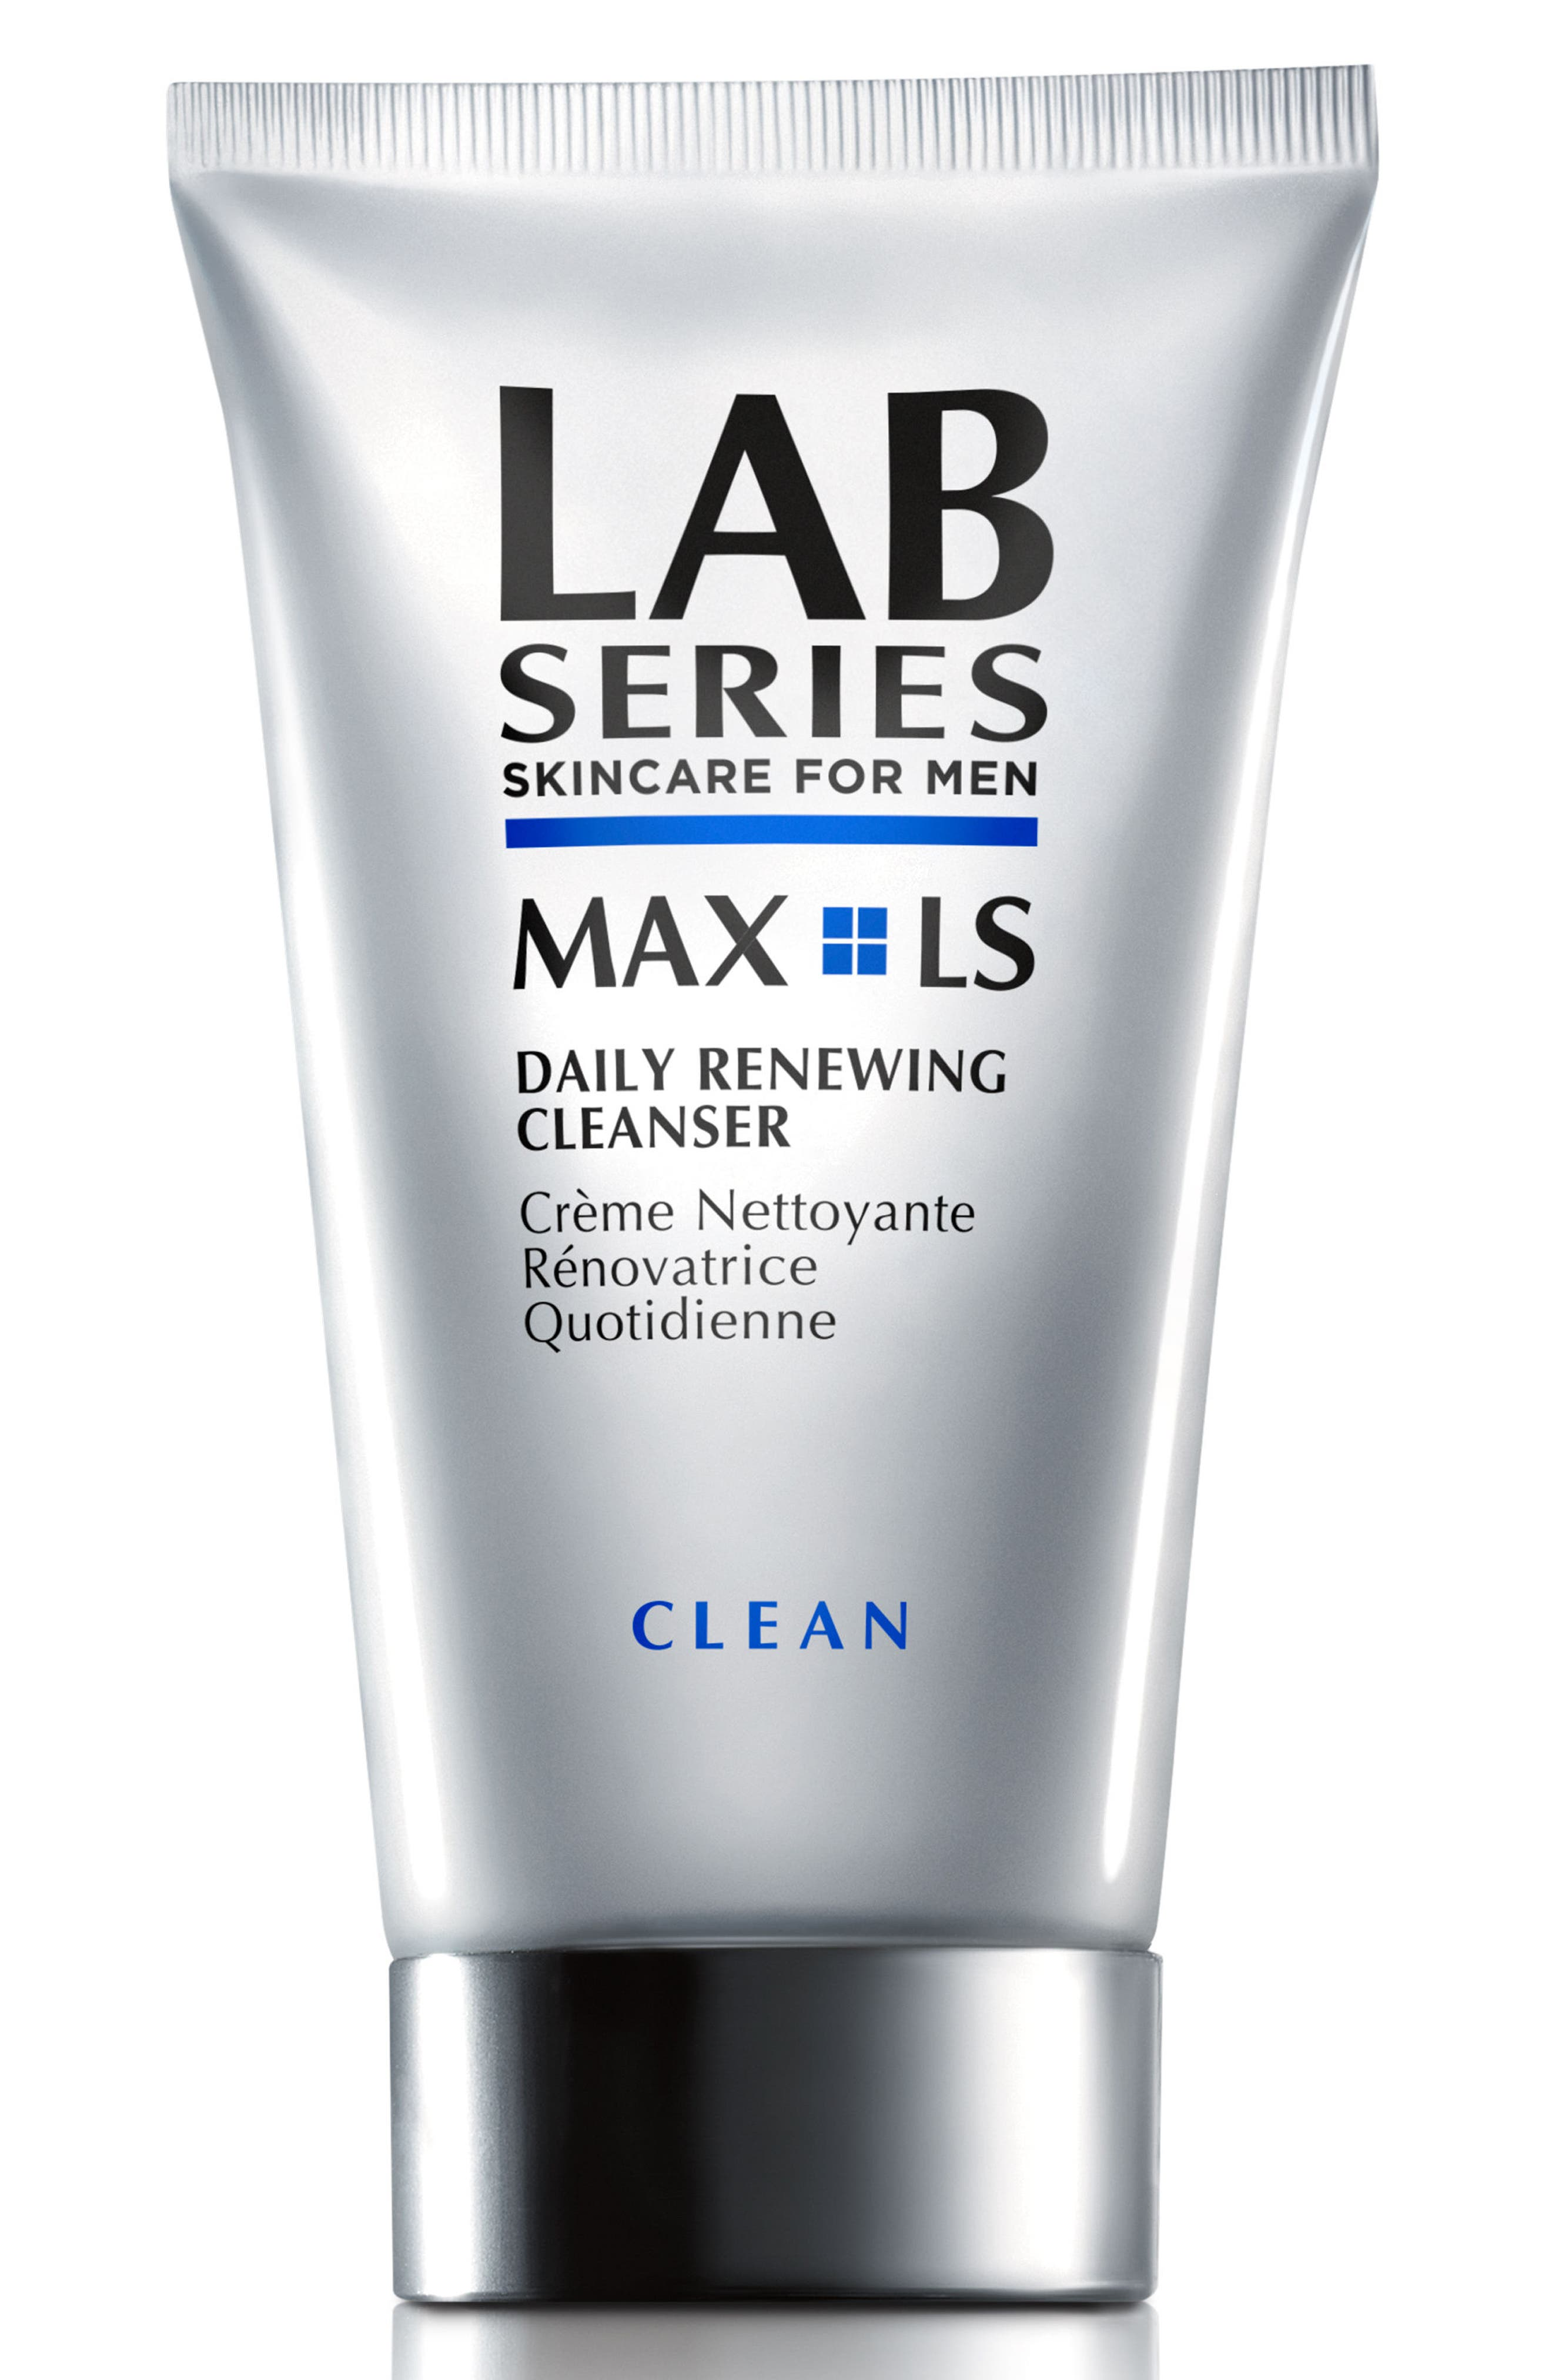 Lab Series Skincare for Men MAX LS Daily Renewing Cleanser